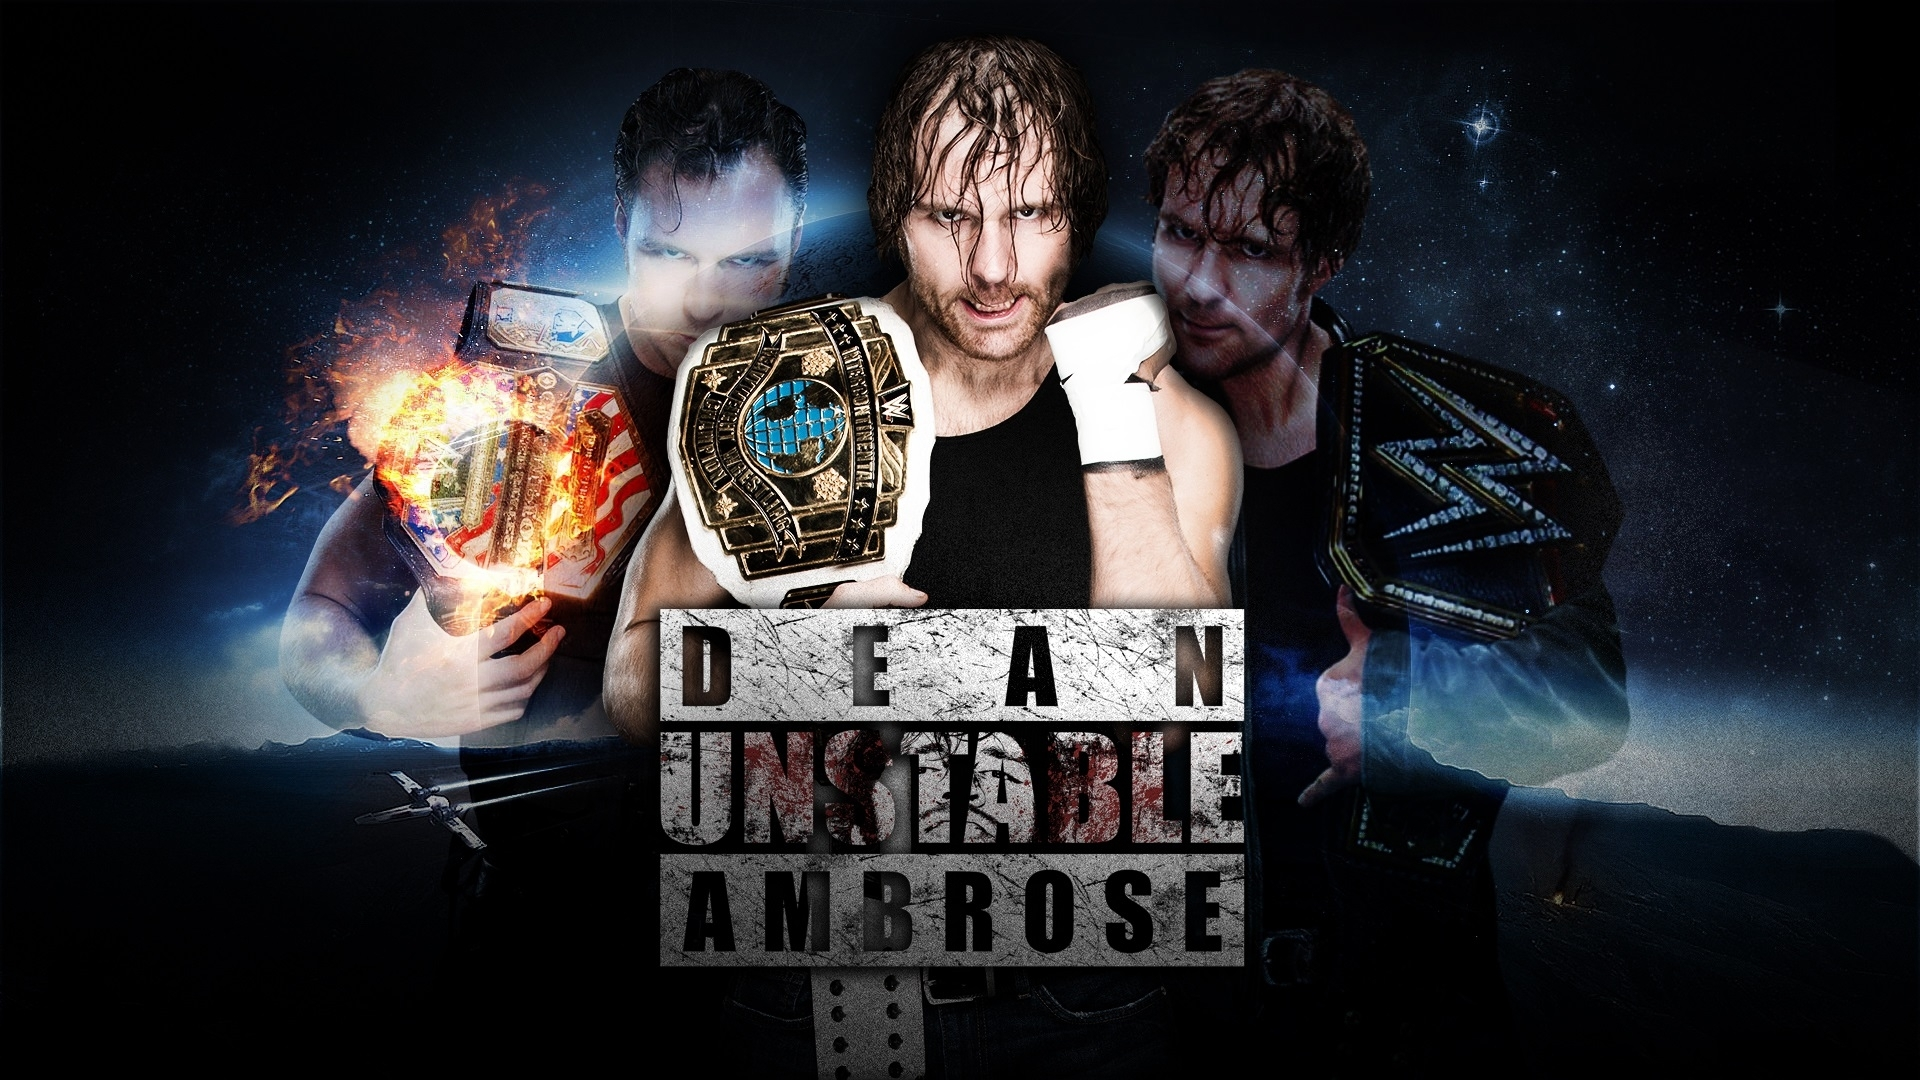 dean ambrose wallpapers and background images - stmed